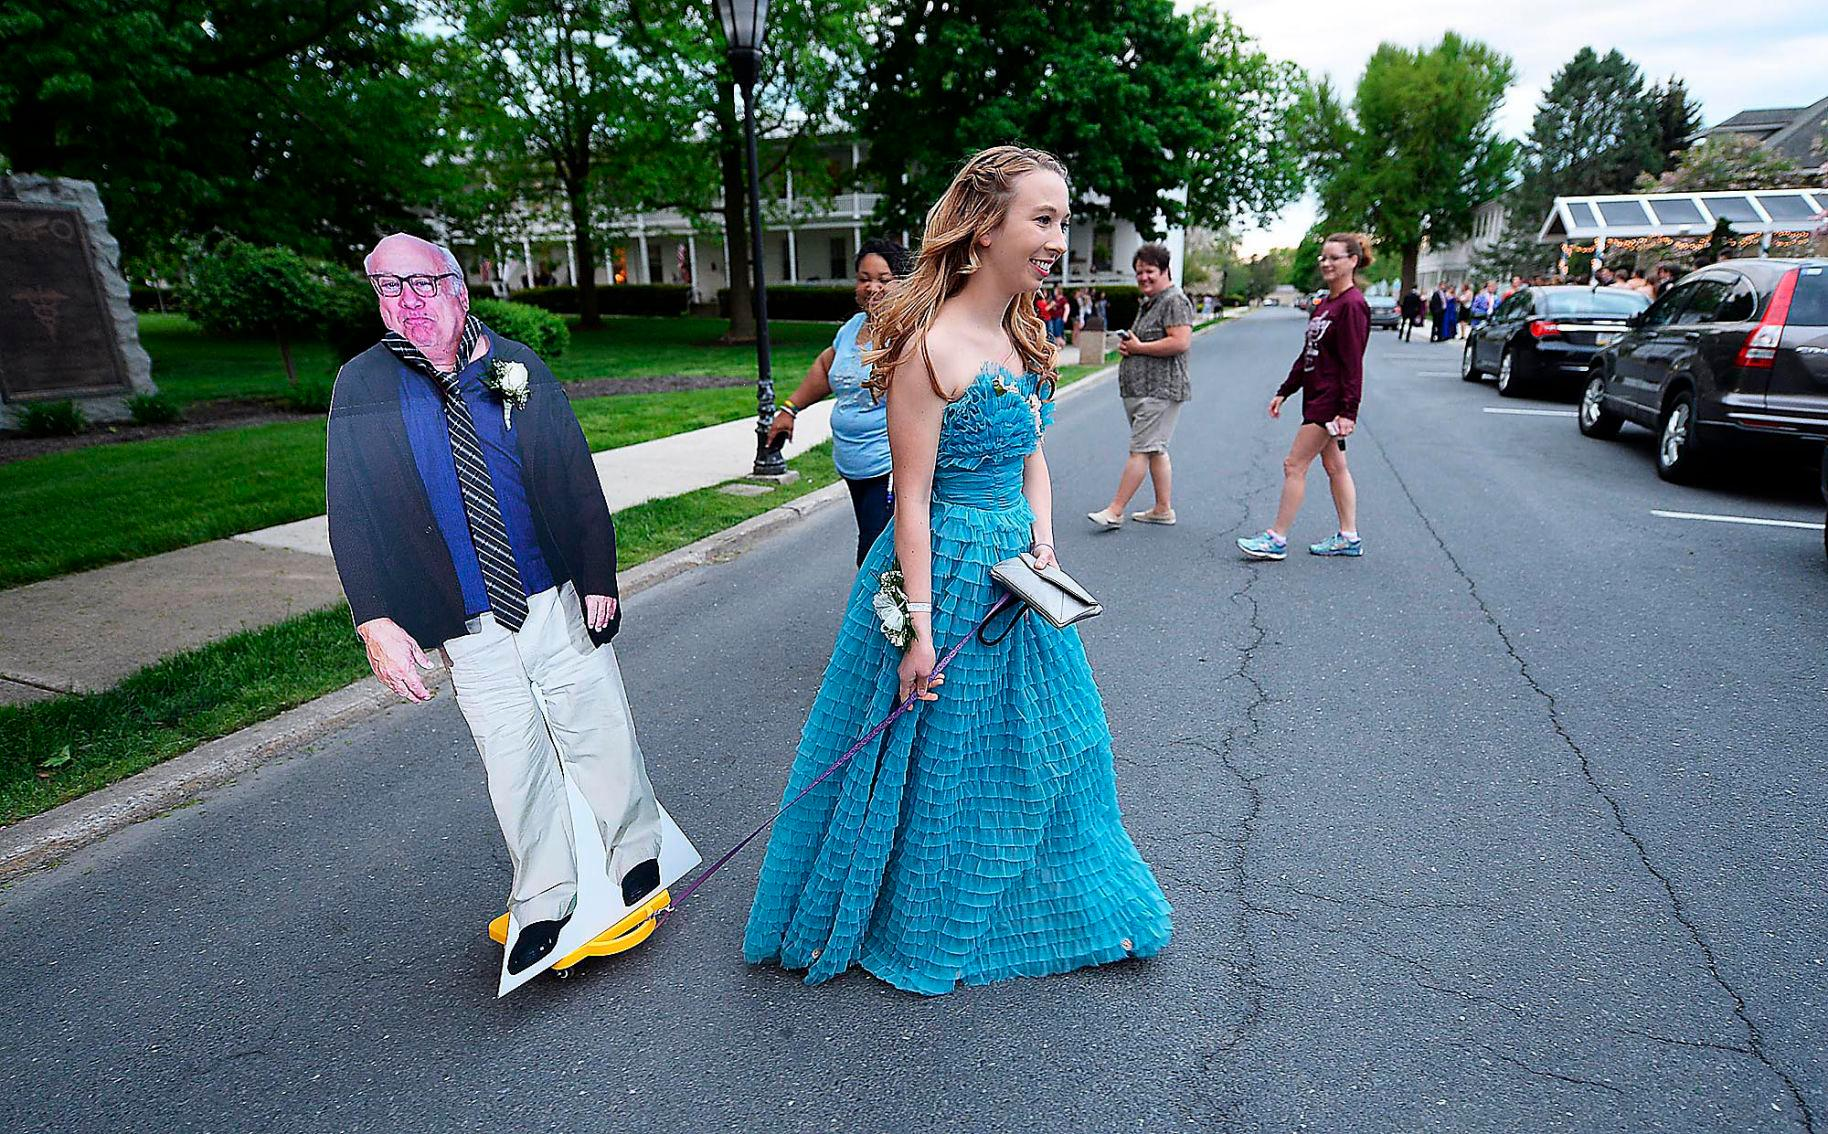 Allison Closs arrives for the Carlisle High School senior prom at Letort View Community Center at Carlisle Barracks in Carlise, Pa., on Friday, May 11, 2018.  Closs and her famous two-dimensional date joined other Carlisle High School seniors Friday for prom. Closs purchased the cutout of DeVito online along with a scooter she used to move the figure with.   (Michael Bupp /The Sentinel via AP)